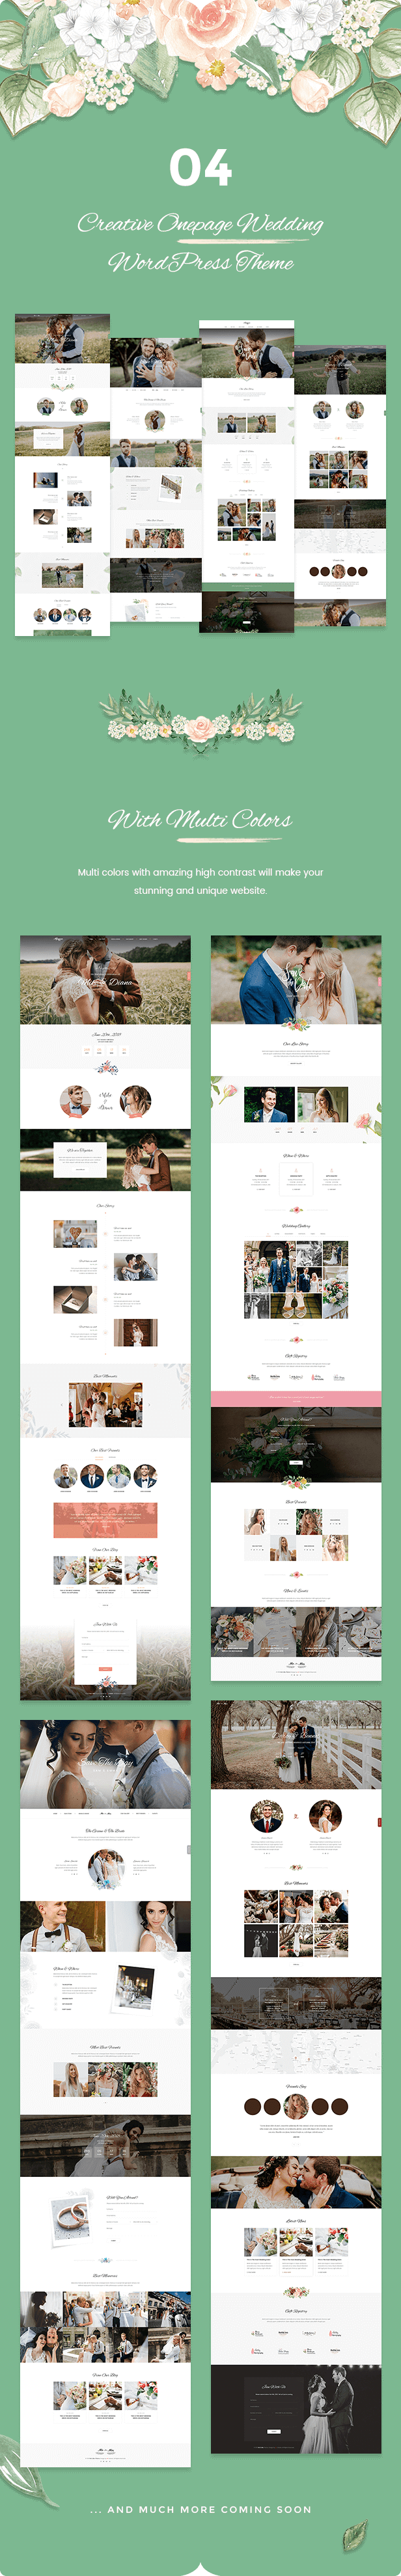 Sweetinz - Tema de WordPress la boda creativa disponible